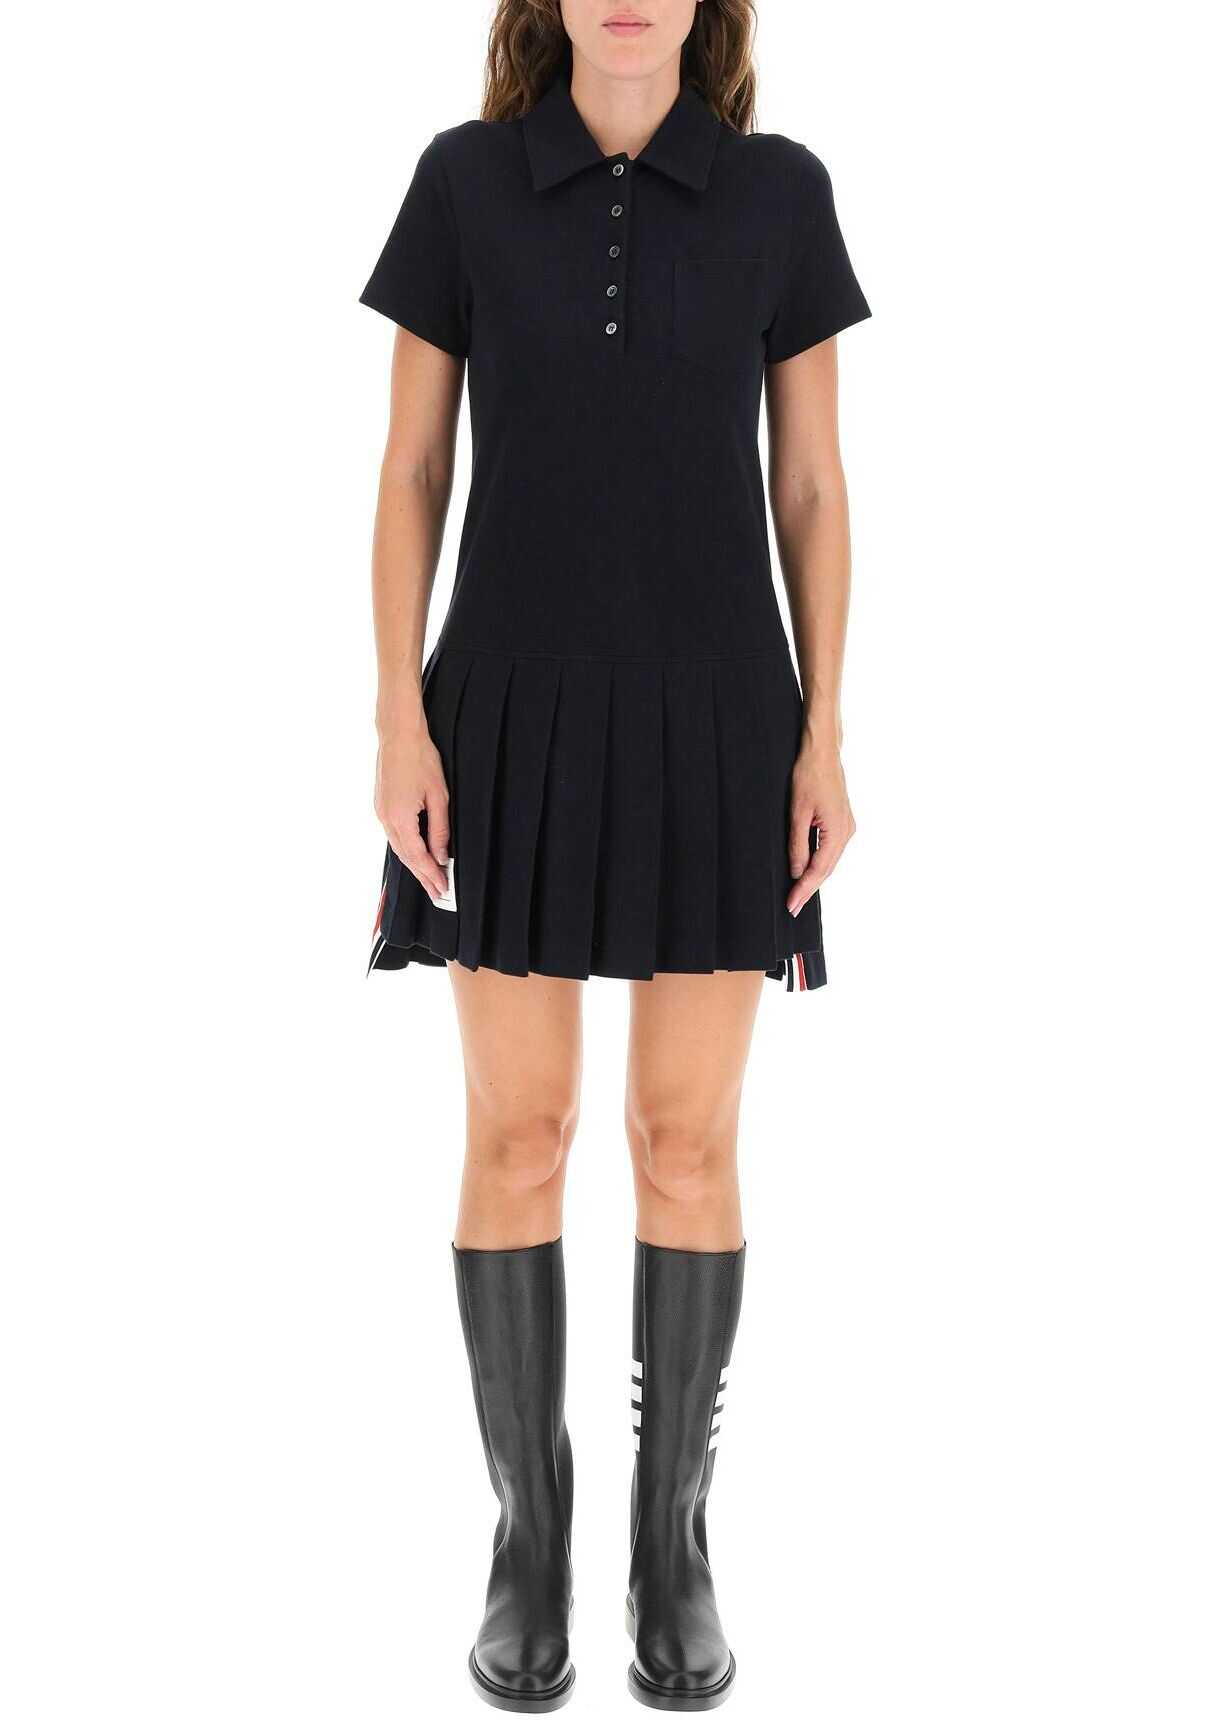 Thom Browne Polo Dress With Pleated Hem FJD086A00050 NAVY image0